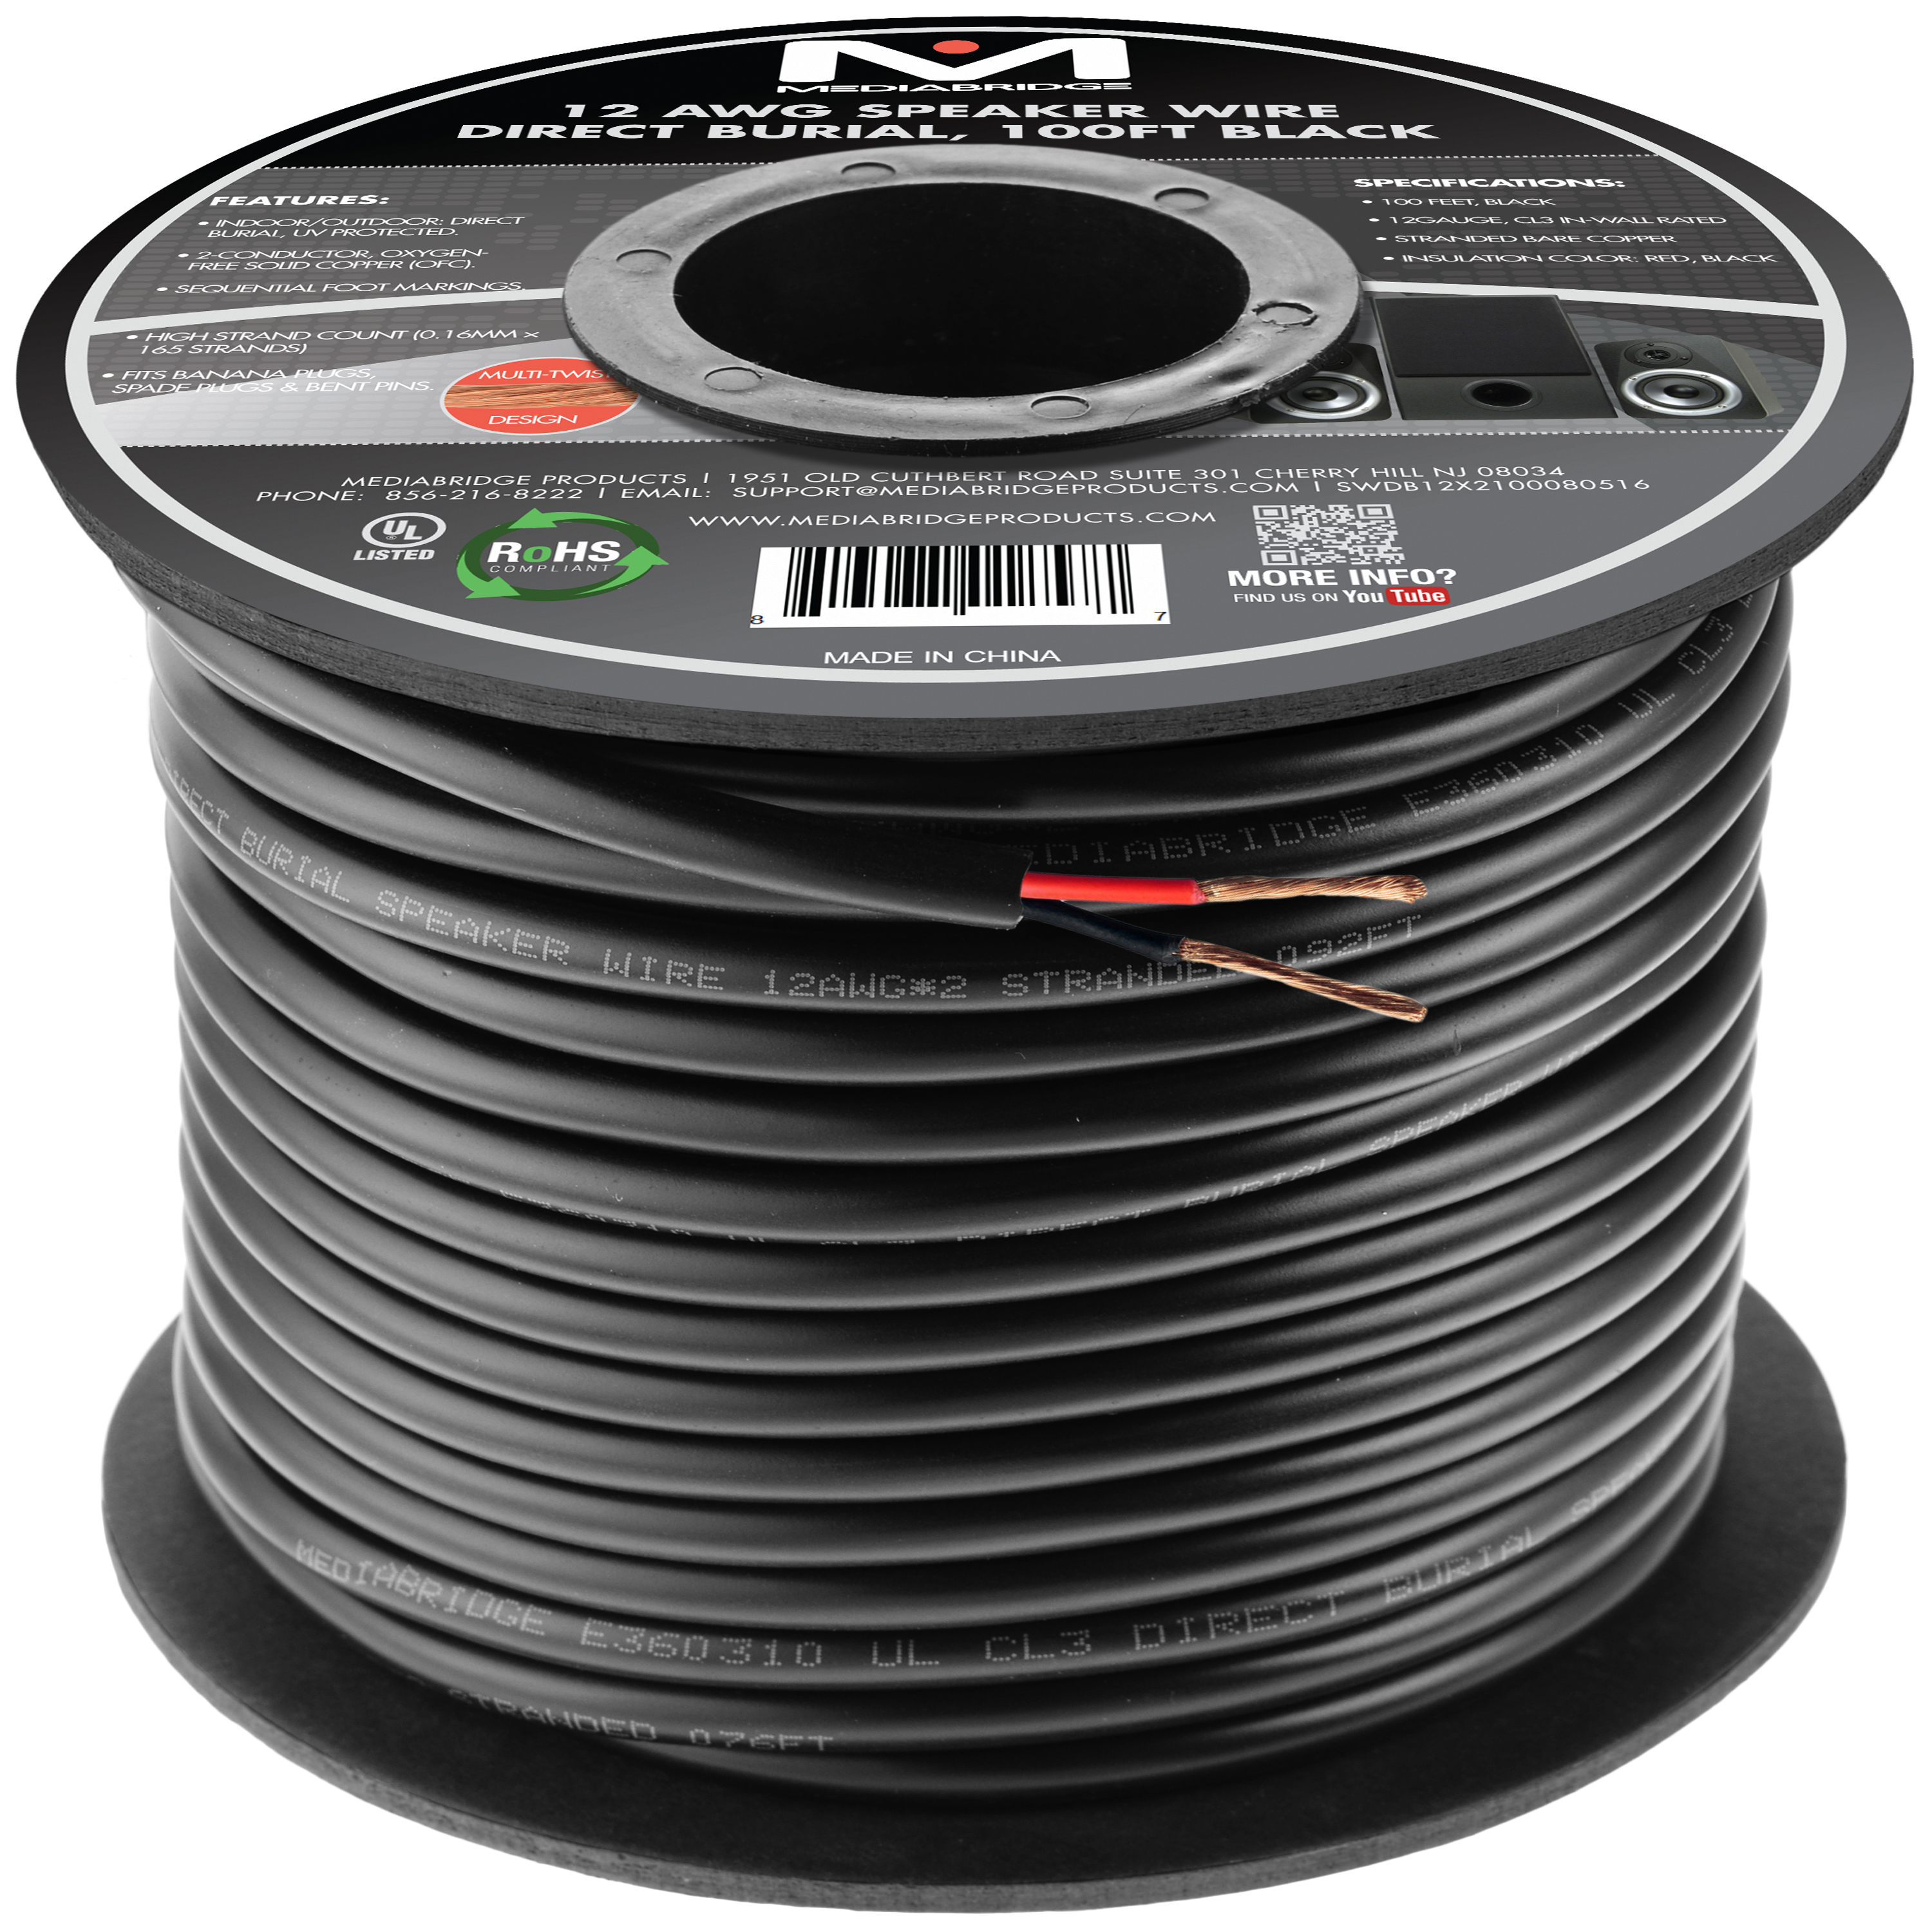 Shop New Speaker Wire Mediabridge Products Audio Wiring Accessories 12awg 2 Conductor Direct Burial 999 Oxygen Free Copper Ul Listed Rated For Use 100 Feet